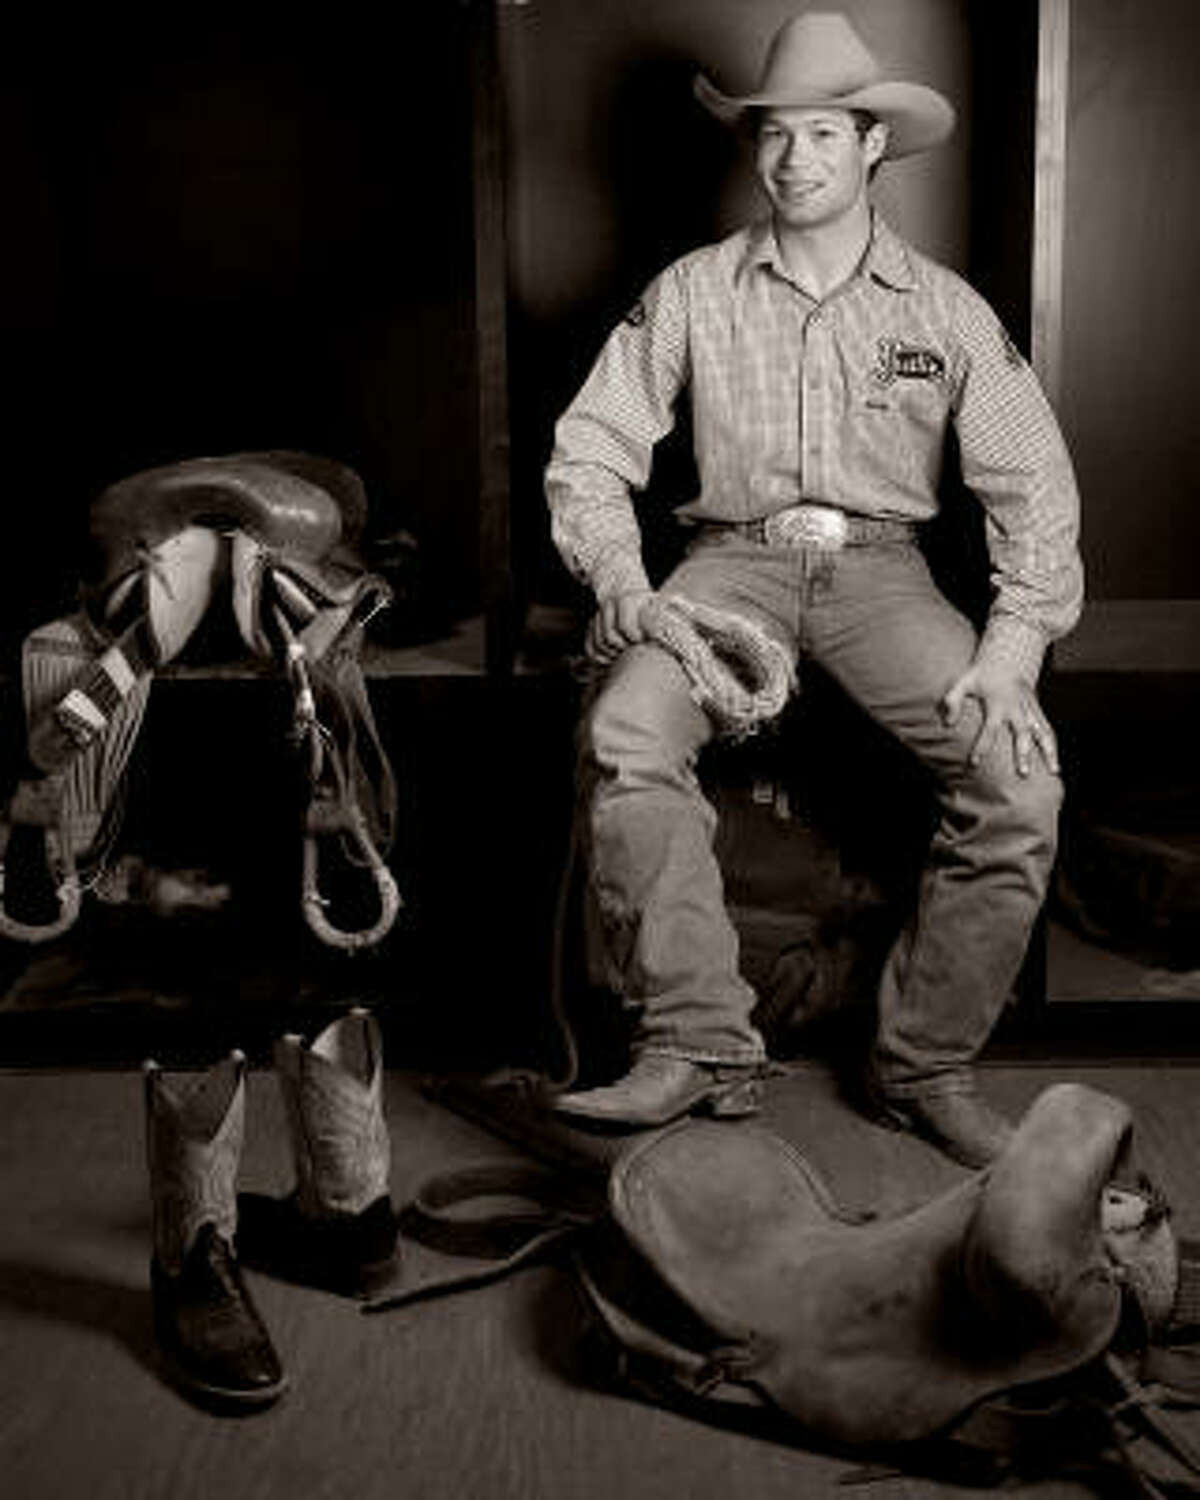 Heith DeMoss, a saddle bronc rider from Heflin, La.